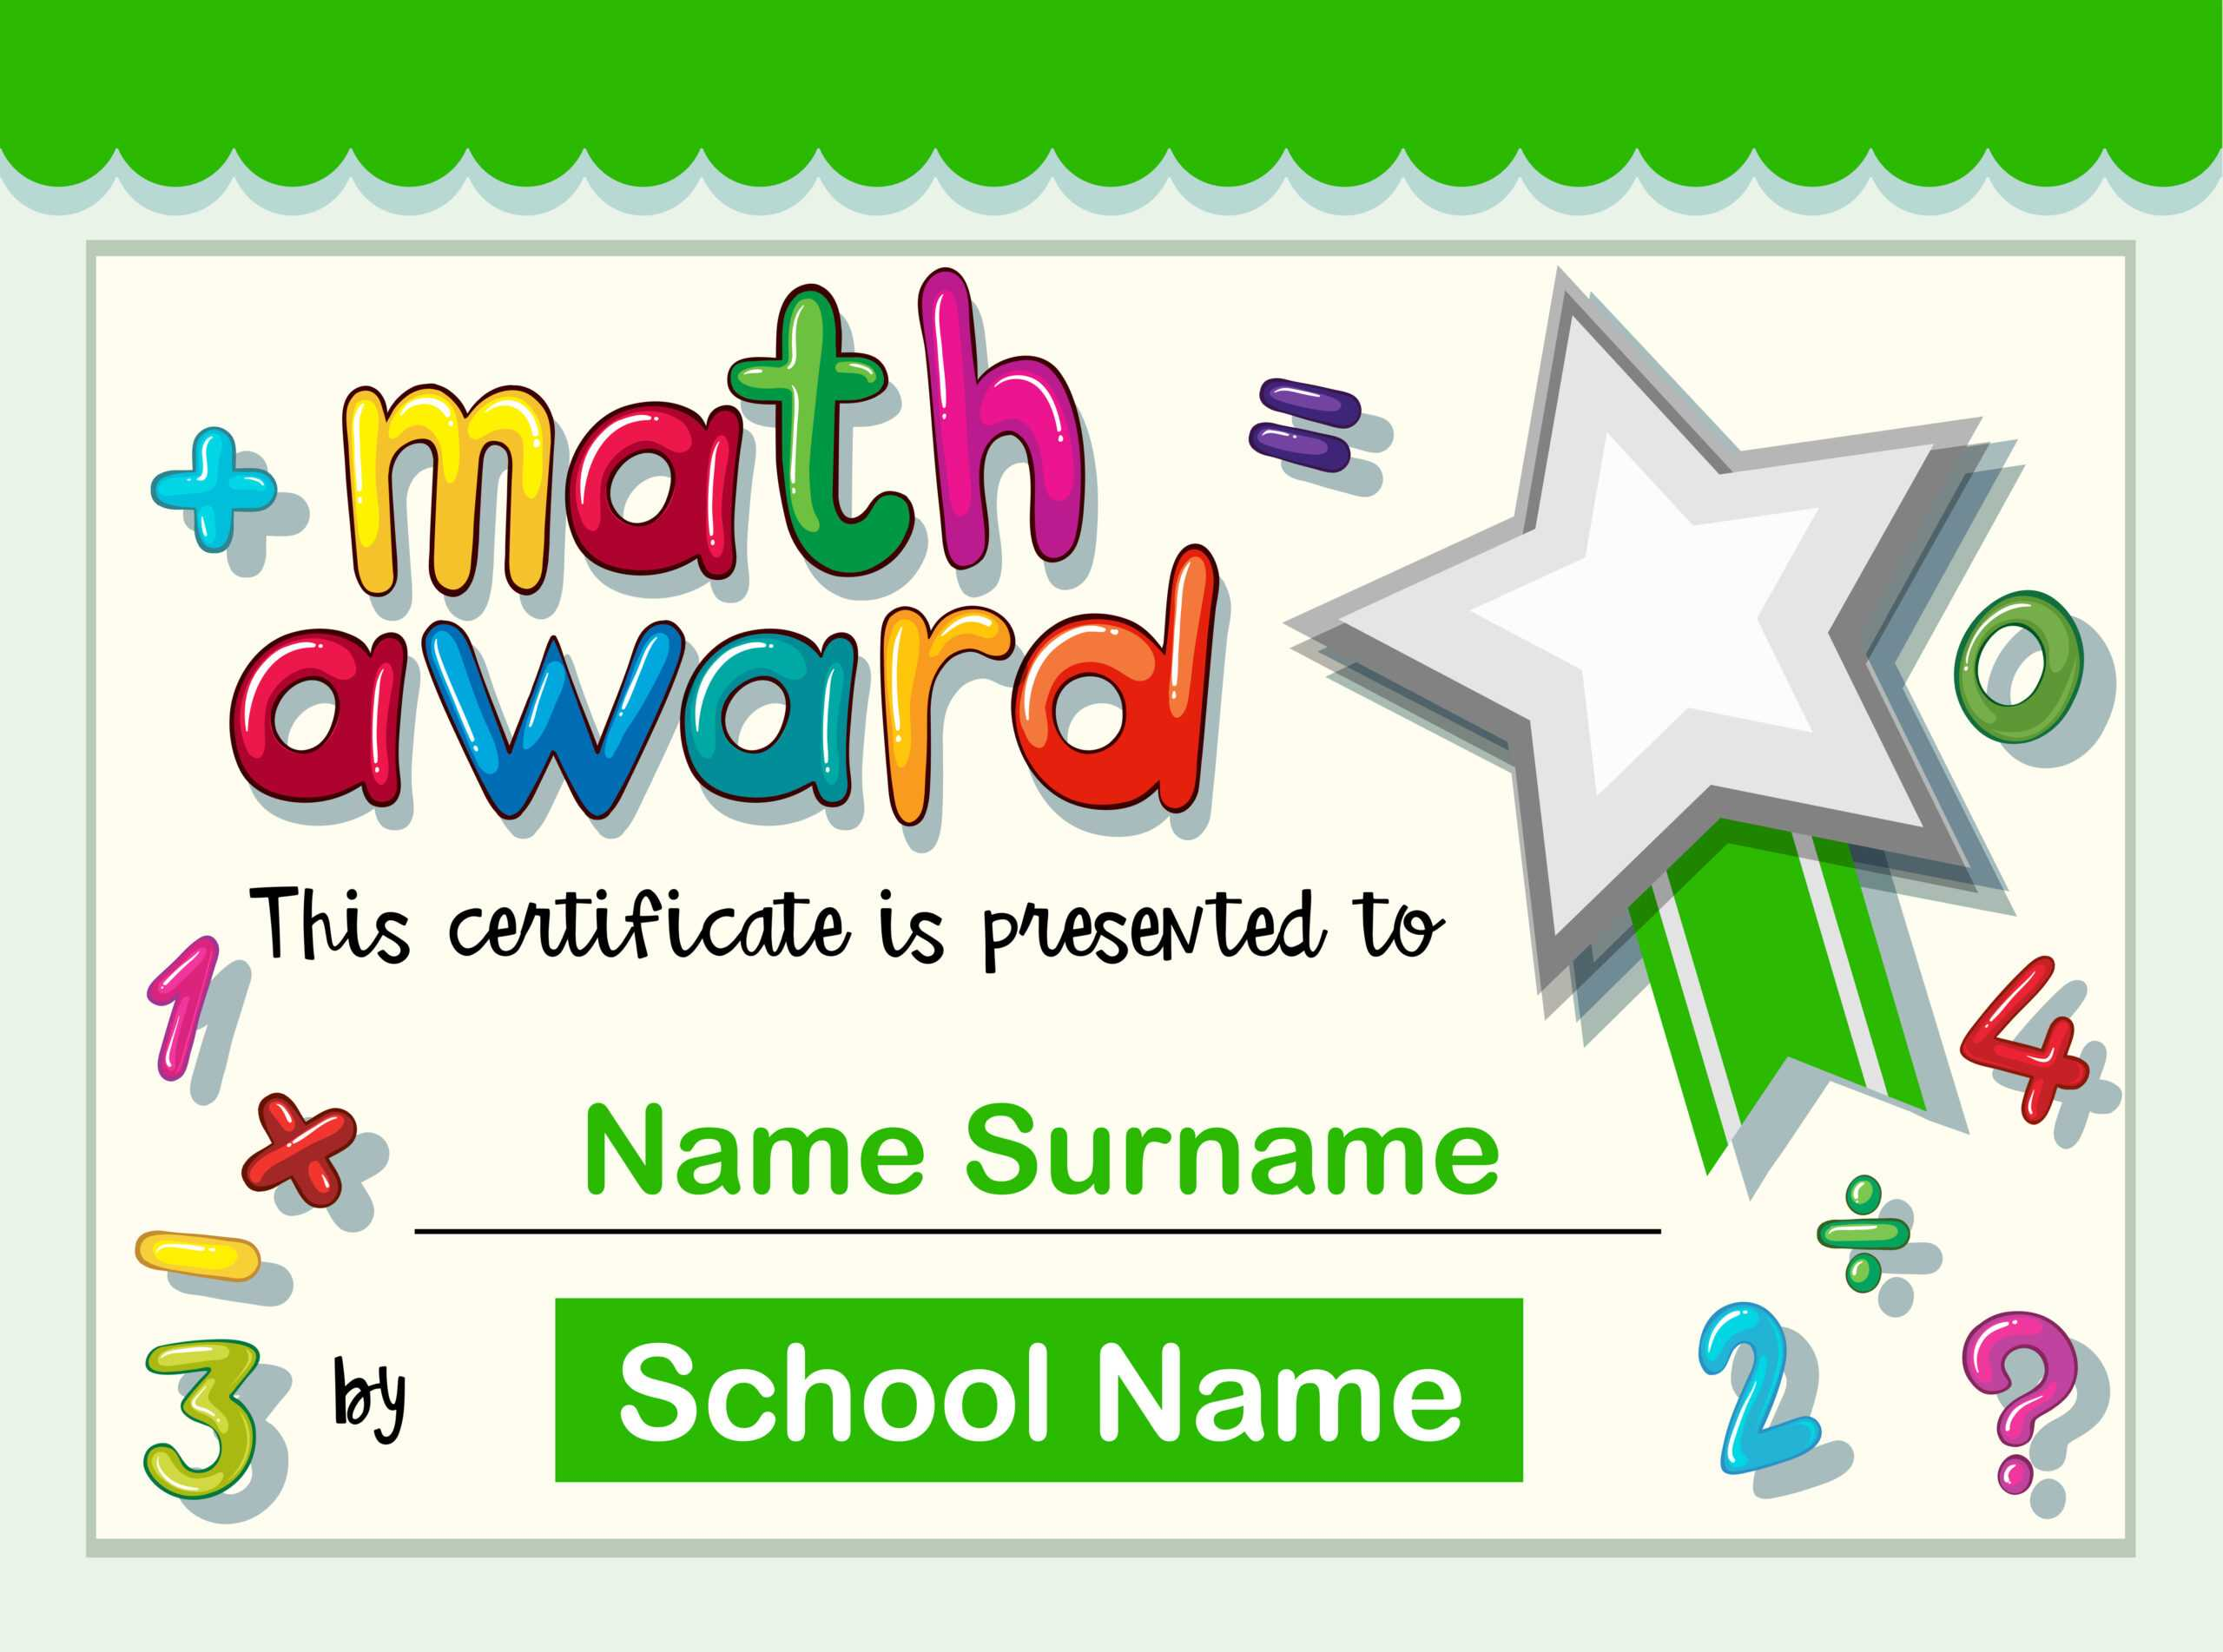 Certificate Template For Math Award - Download Free Vectors Throughout Math Certificate Template